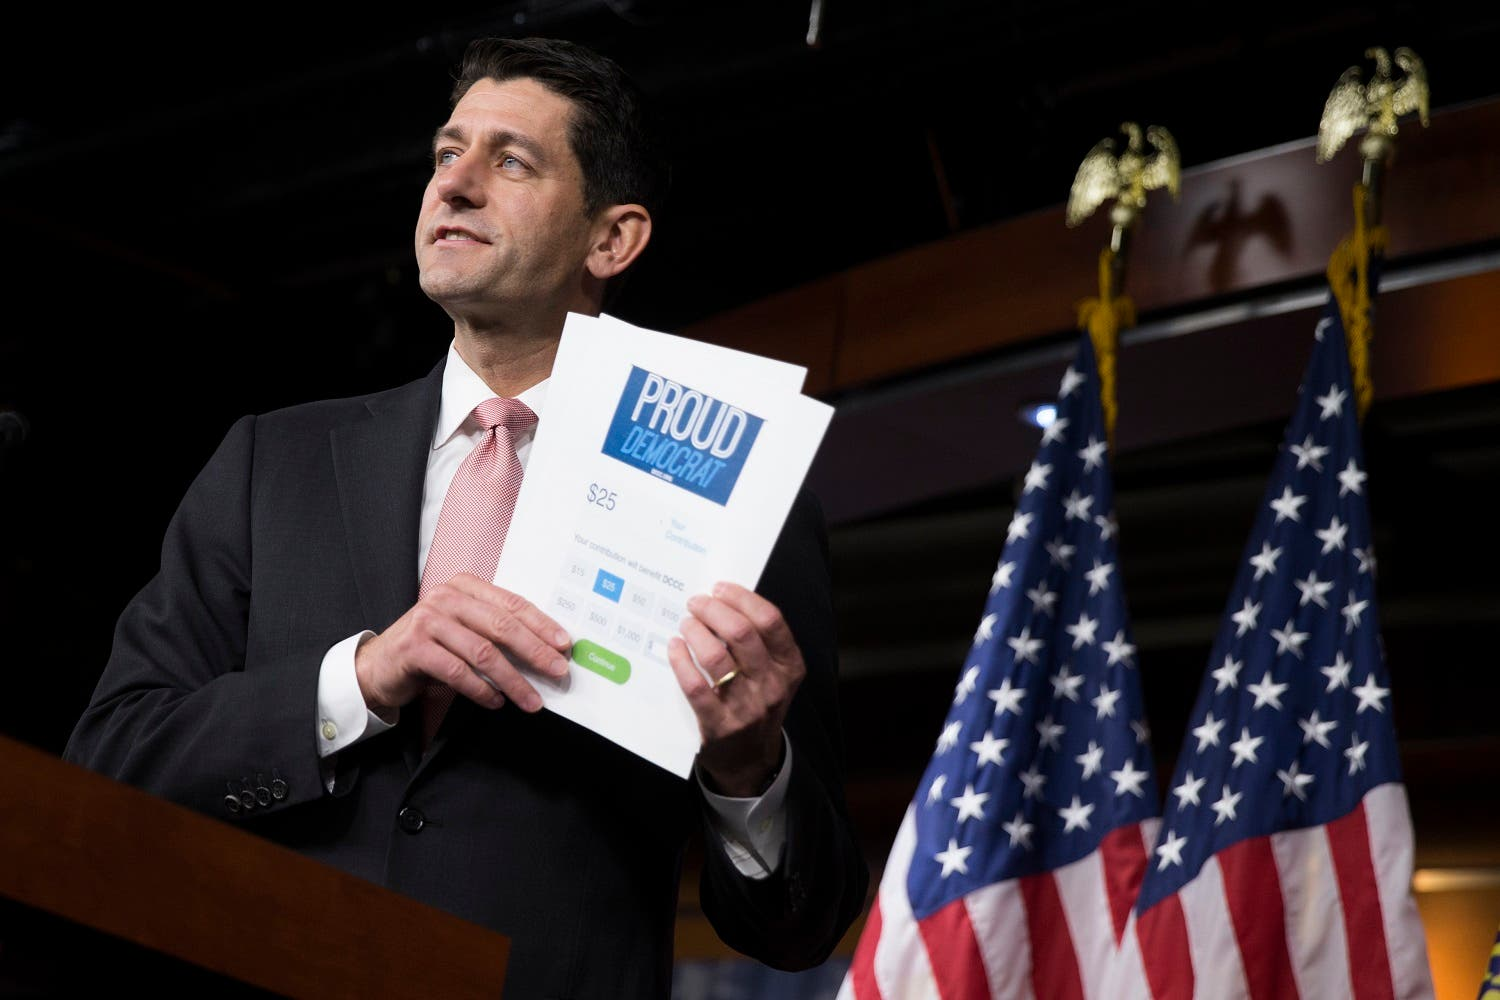 House Speaker Paul Ryan of Wis. holds up a fundraising form for House Democrats as he comments on the ongoing sit-in. (AP)